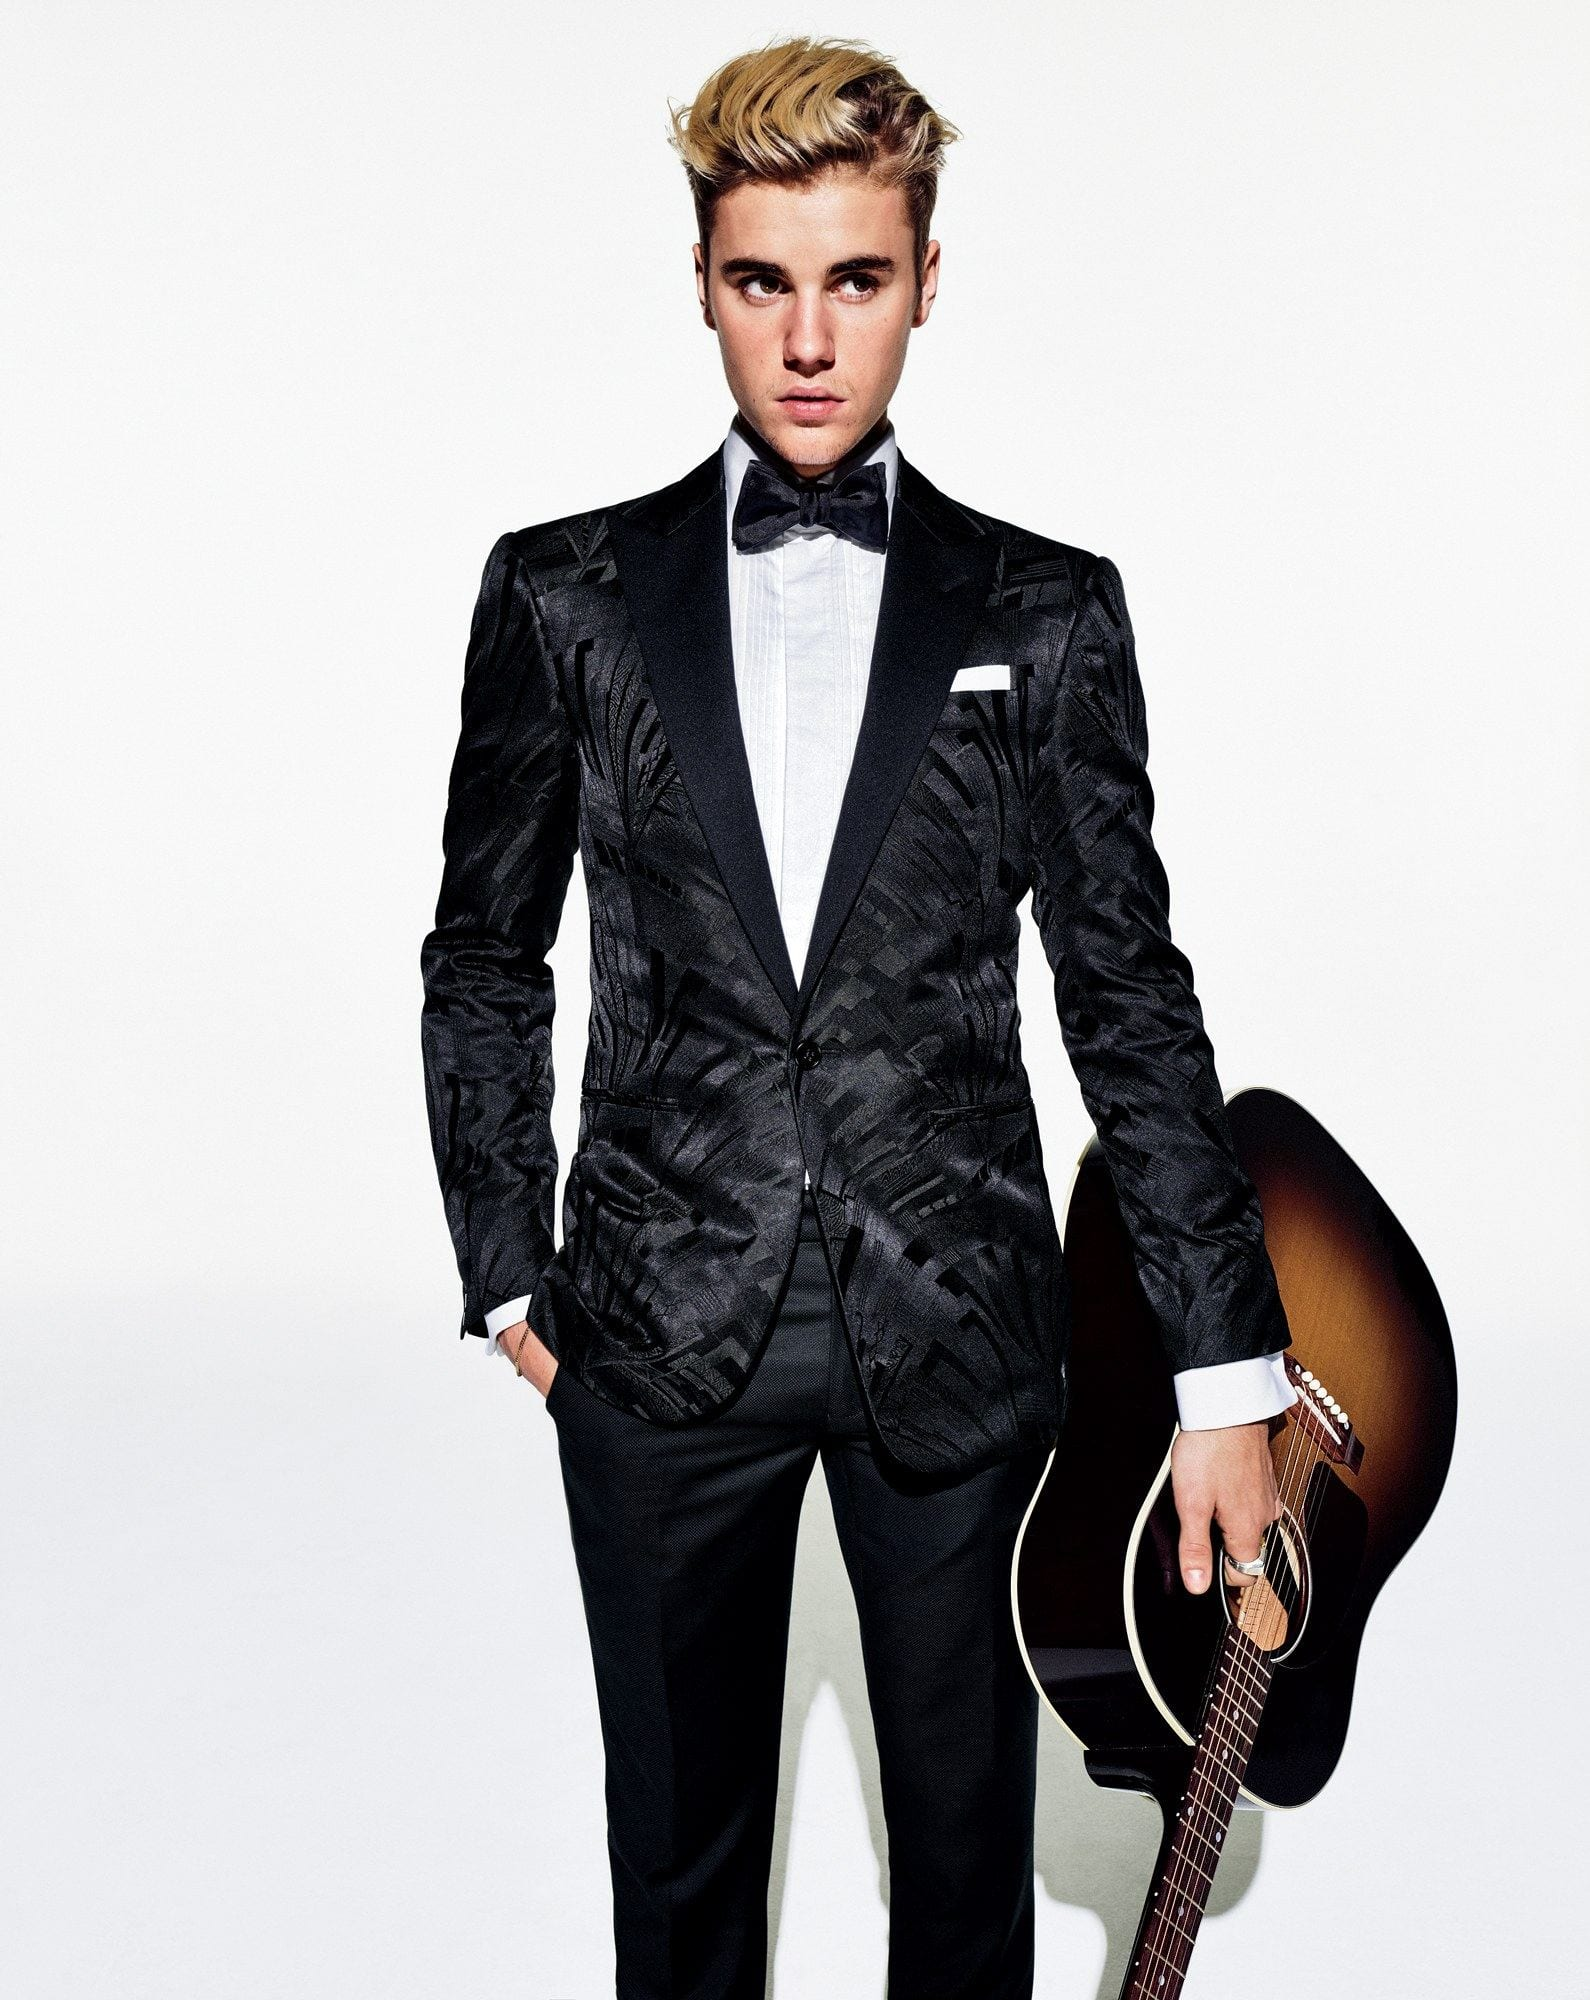 justin-beiber-suit 30 Amazing Men's Suits Combinations to Get Sharp Look